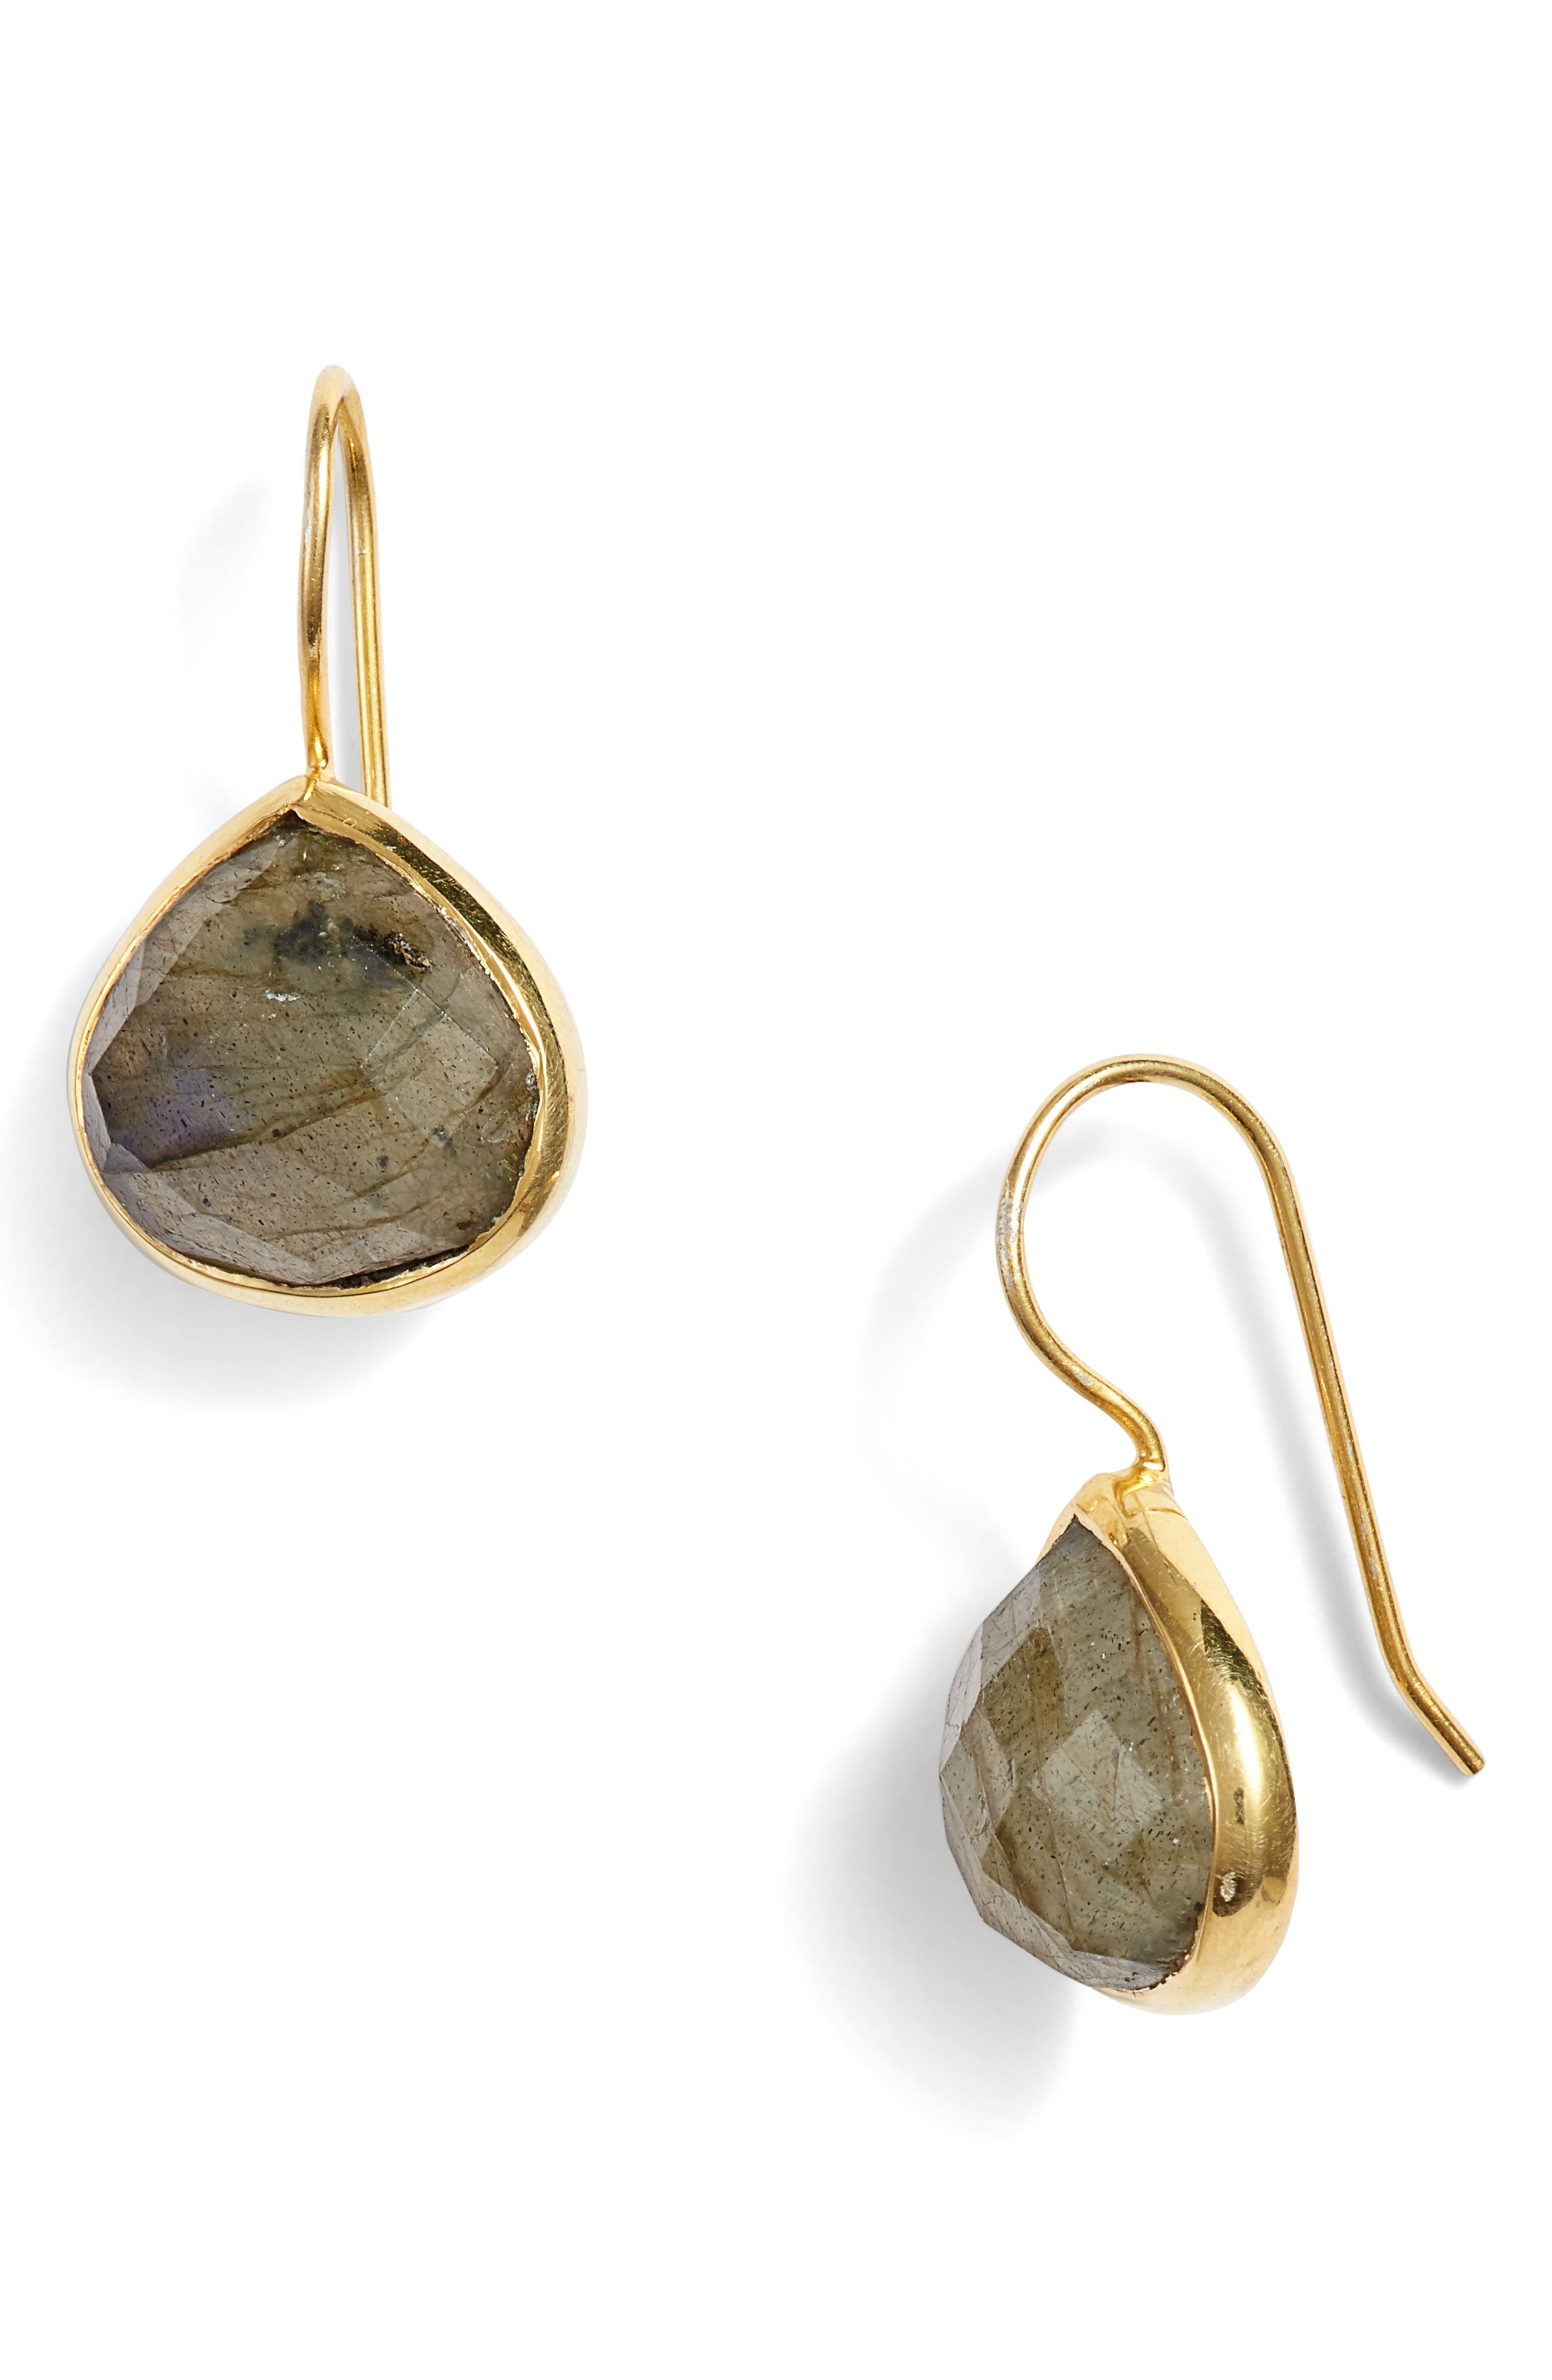 COLLECTIONS BY JOYA,                             Turks and Caicos Stone Drop Earrings,                             Main thumbnail 1, color,                             200